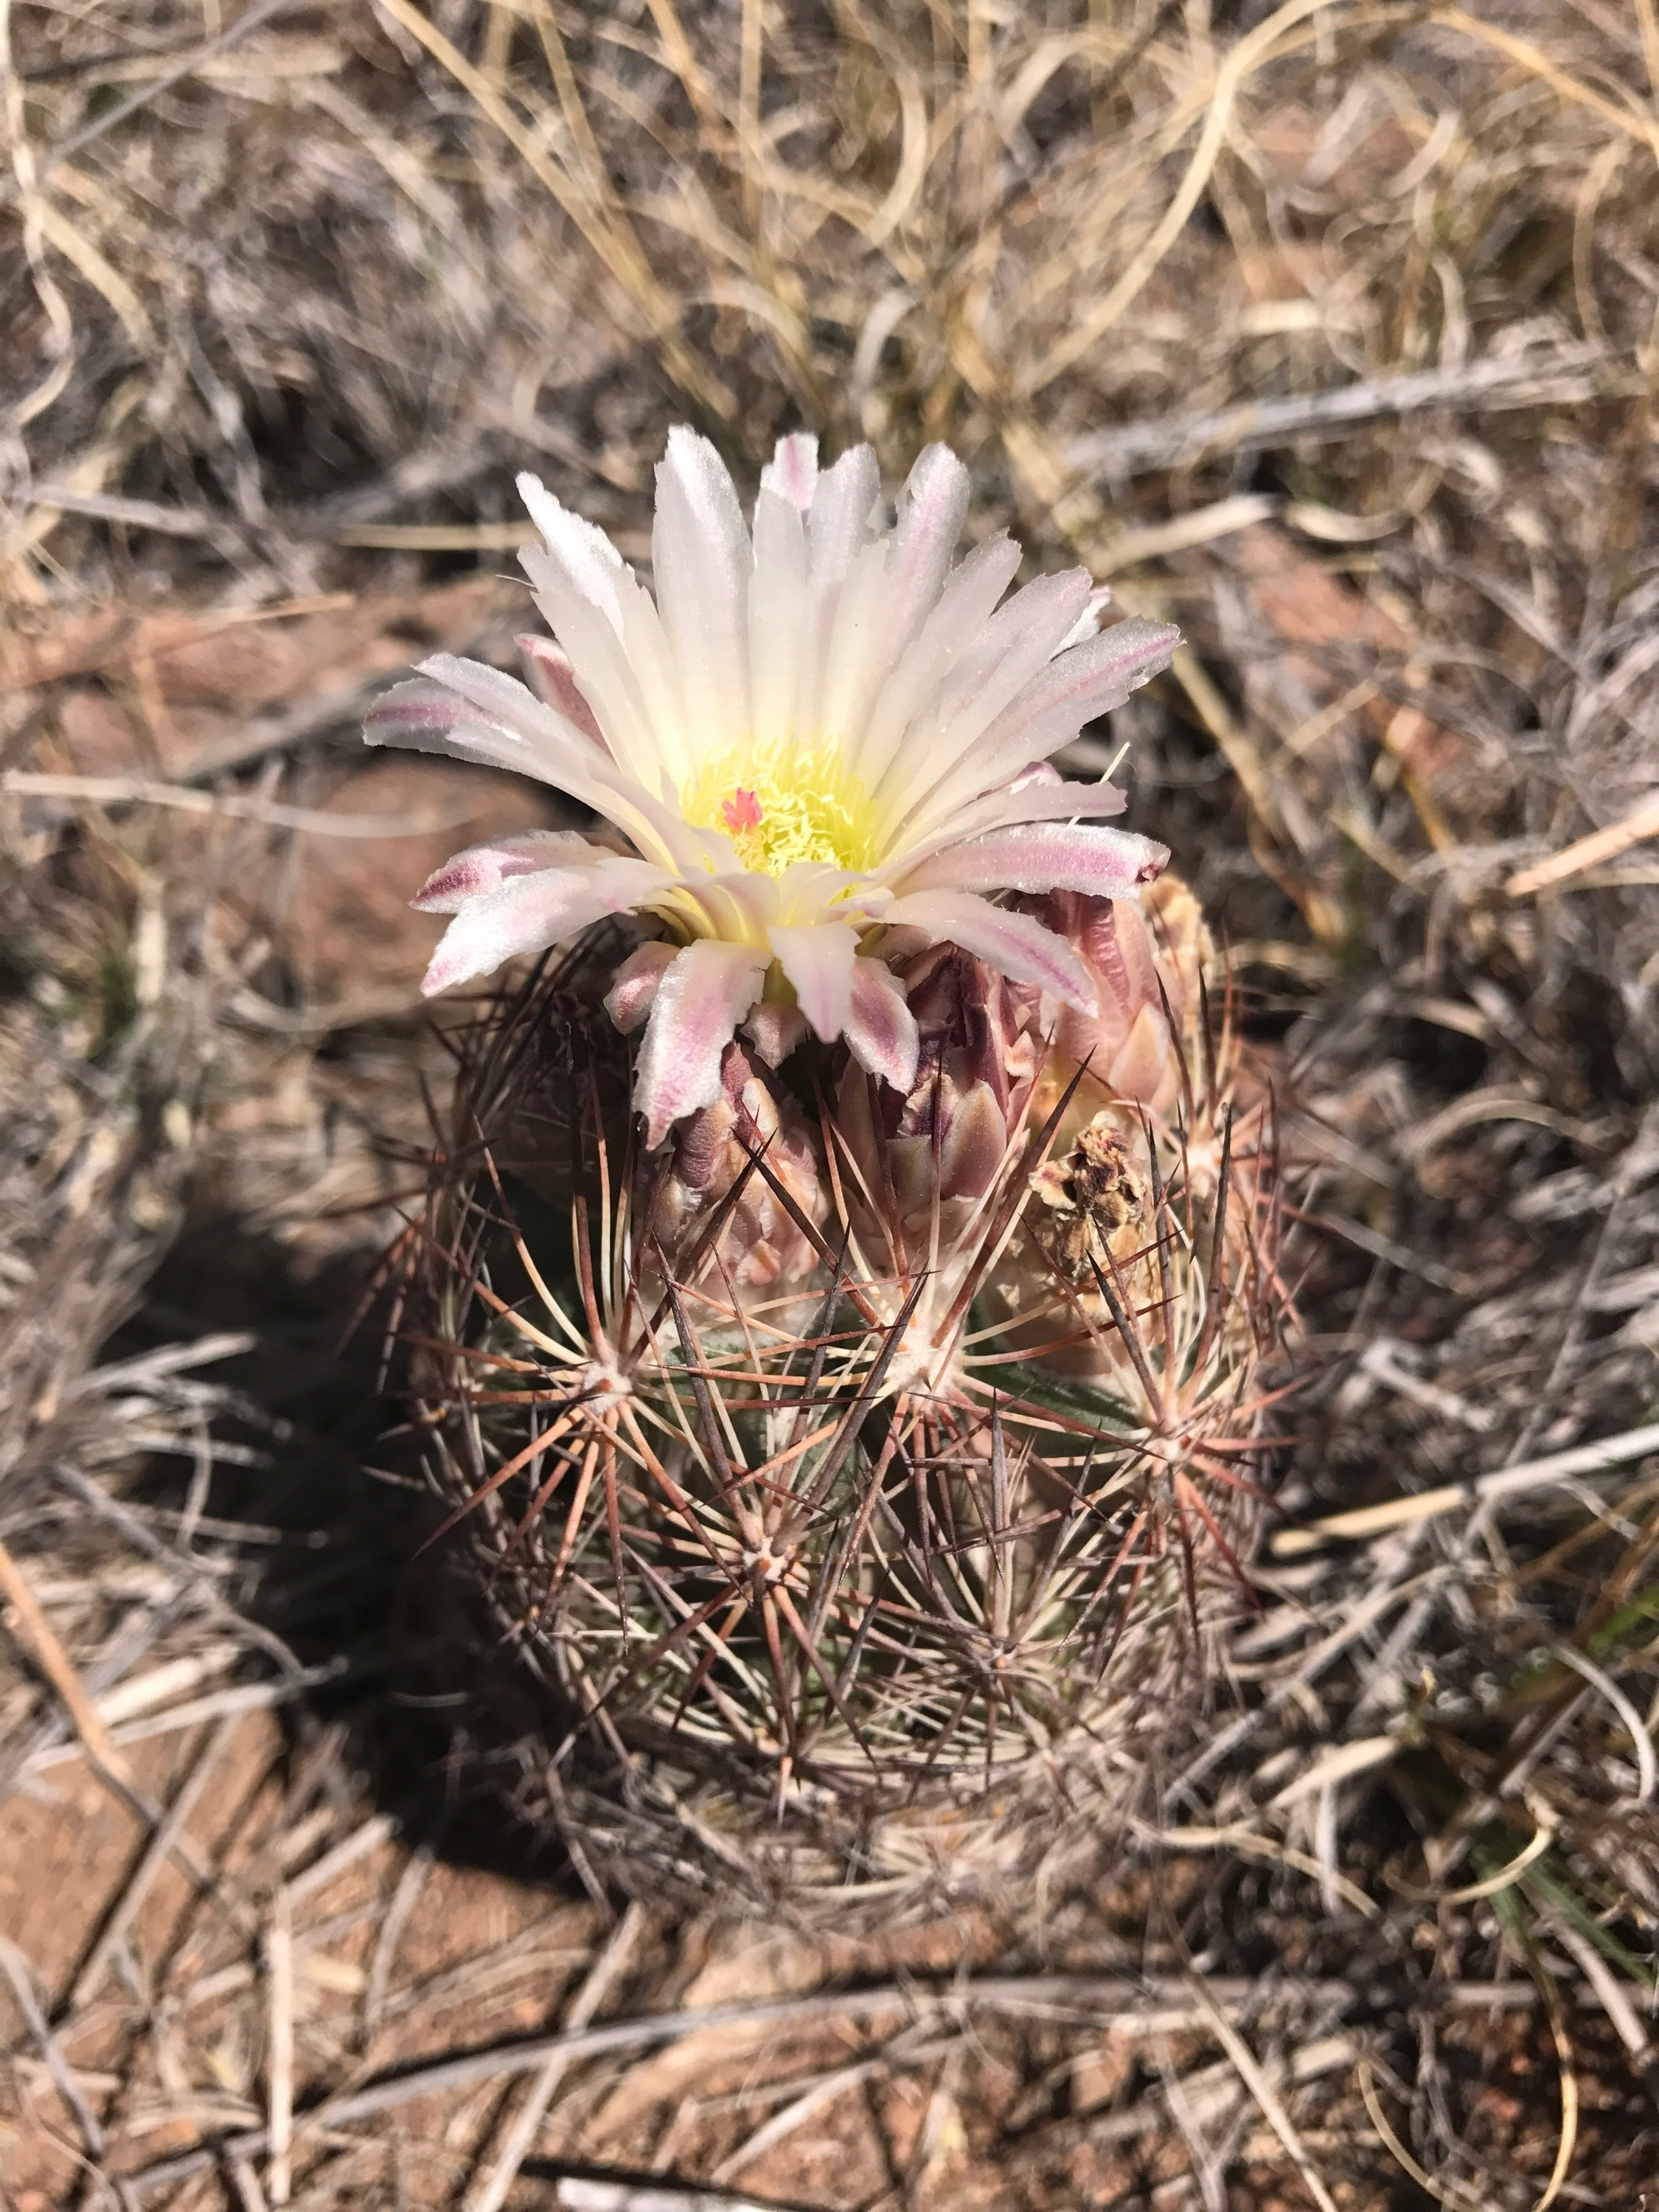 Found a few of these little hedge hog cacti blooming on the property.